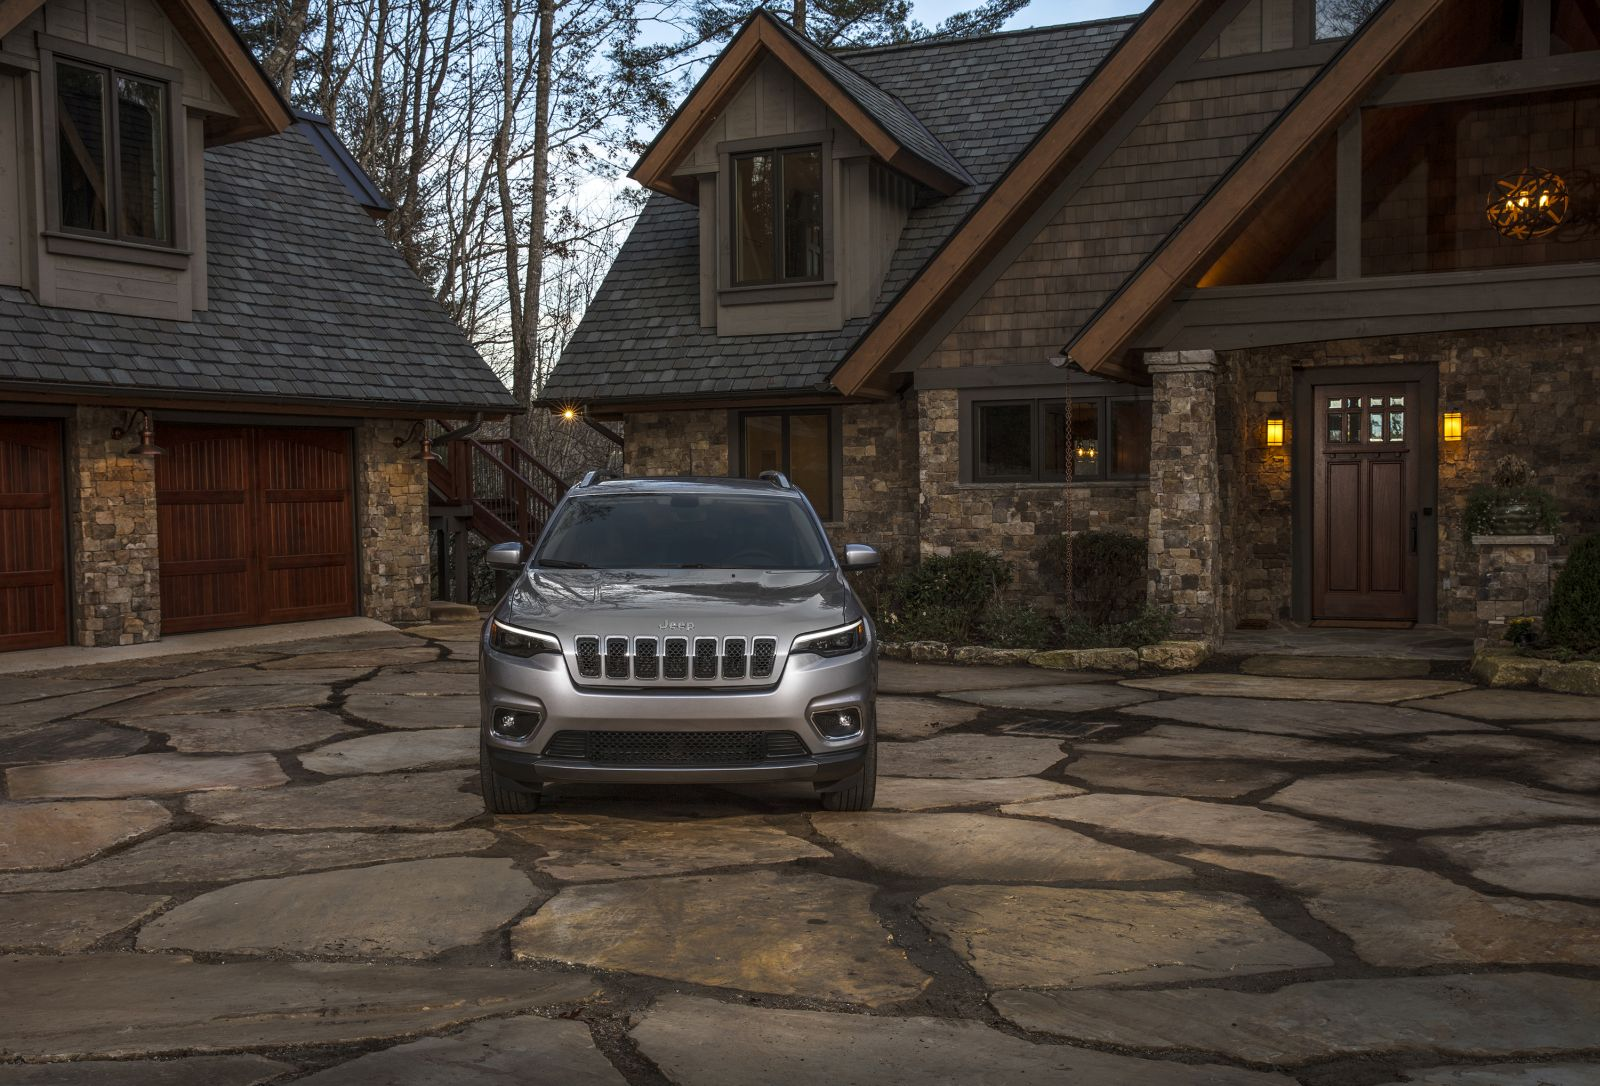 Jeep Cherokee Updates Appearance, Adds Turbo Engine